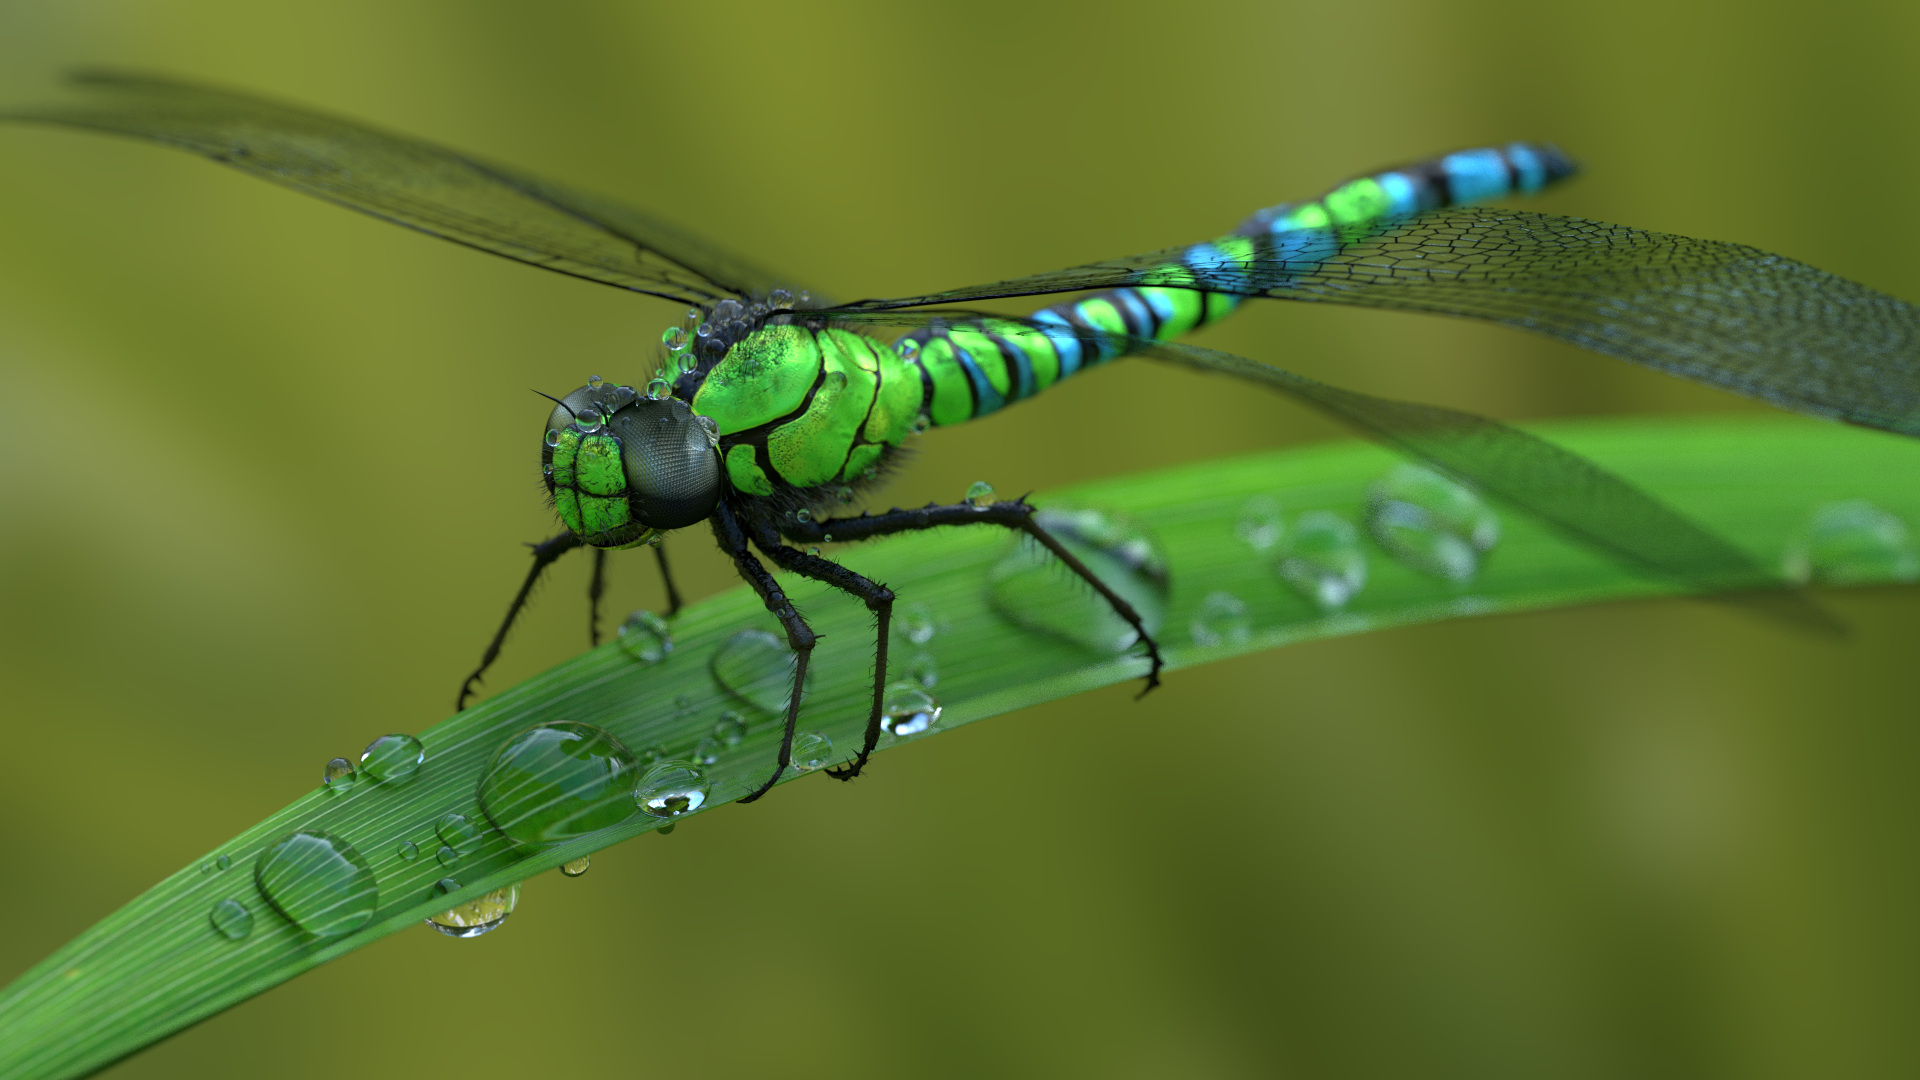 dragonfly by frequenzlos